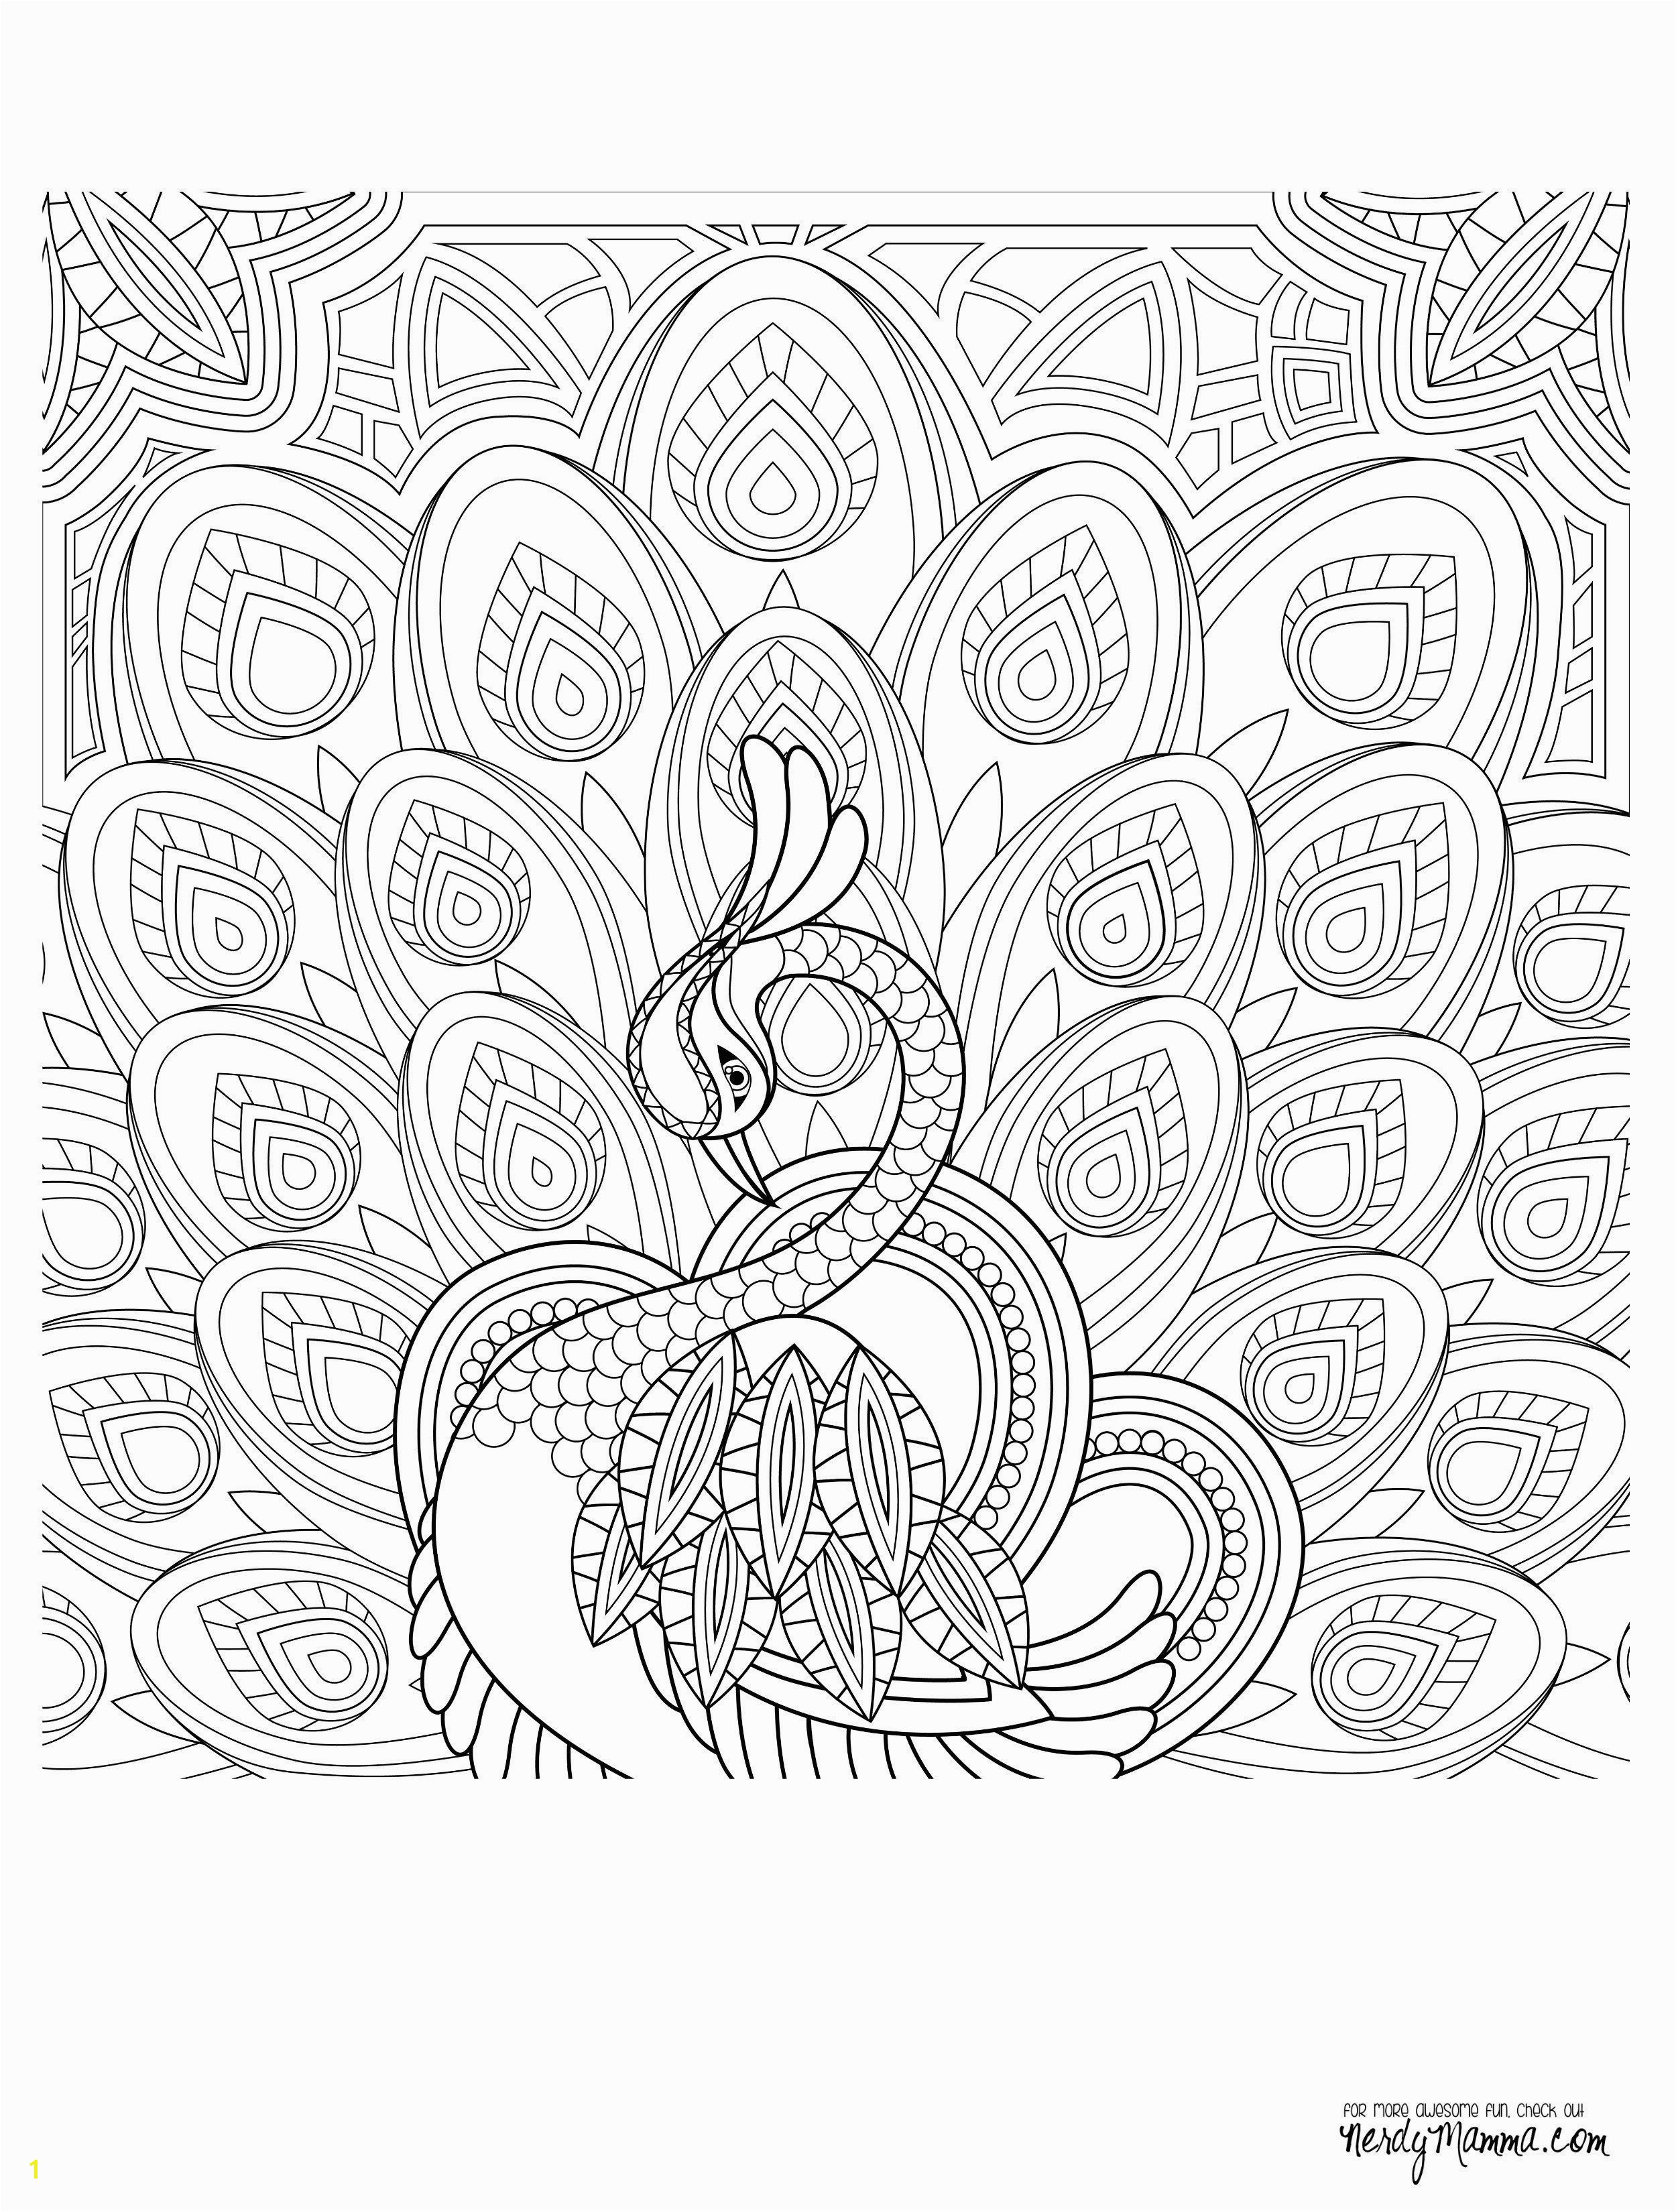 Awesome Printable Coloring Pages for Adults Unique Cool Printable Coloring Pages Fresh Cool Od Dog Coloring